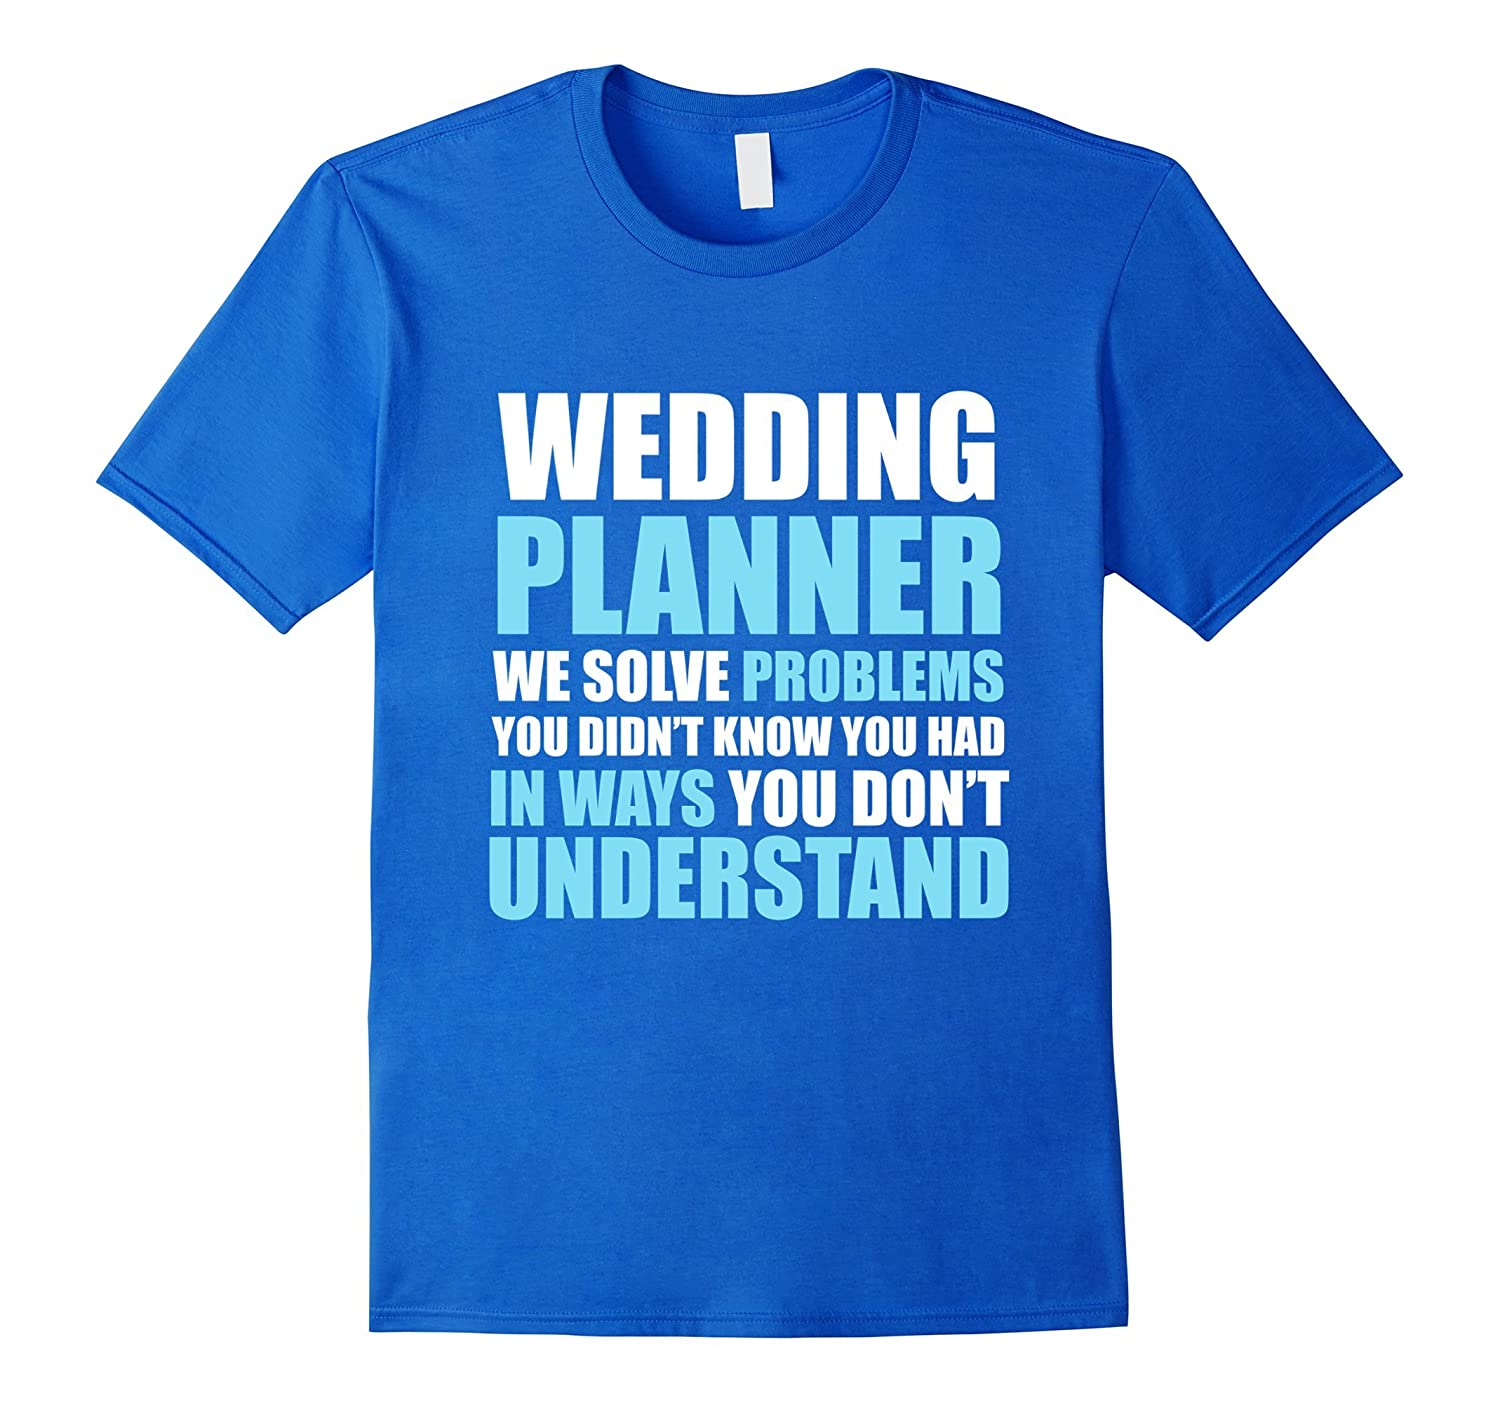 Funny wedding planner t shirt we solve problems gift tee for Funny getting married shirts